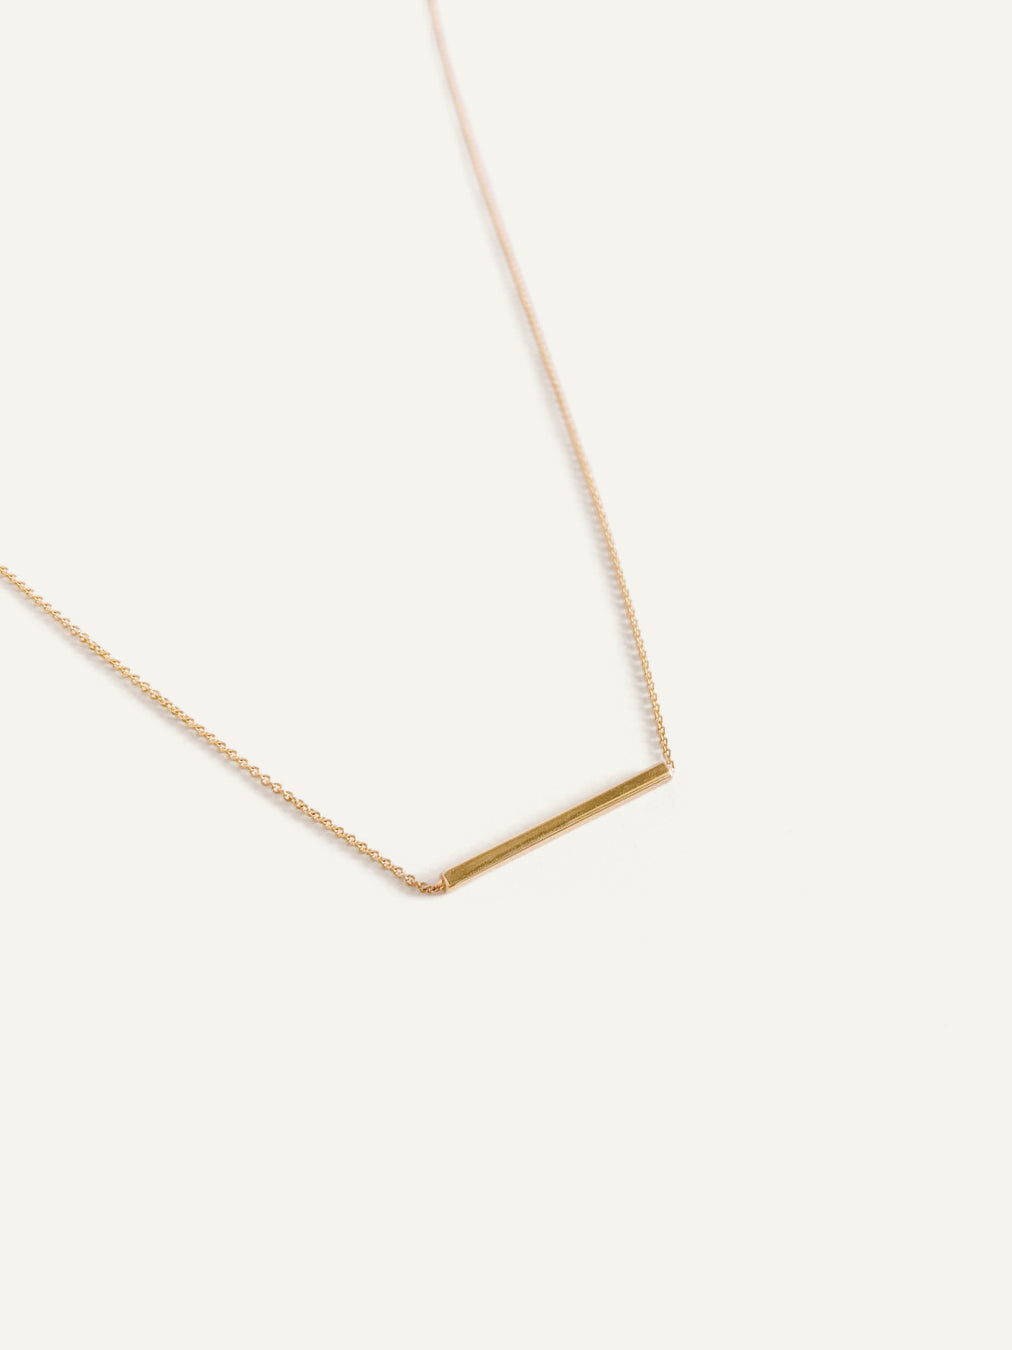 14k Petite Bar Necklace